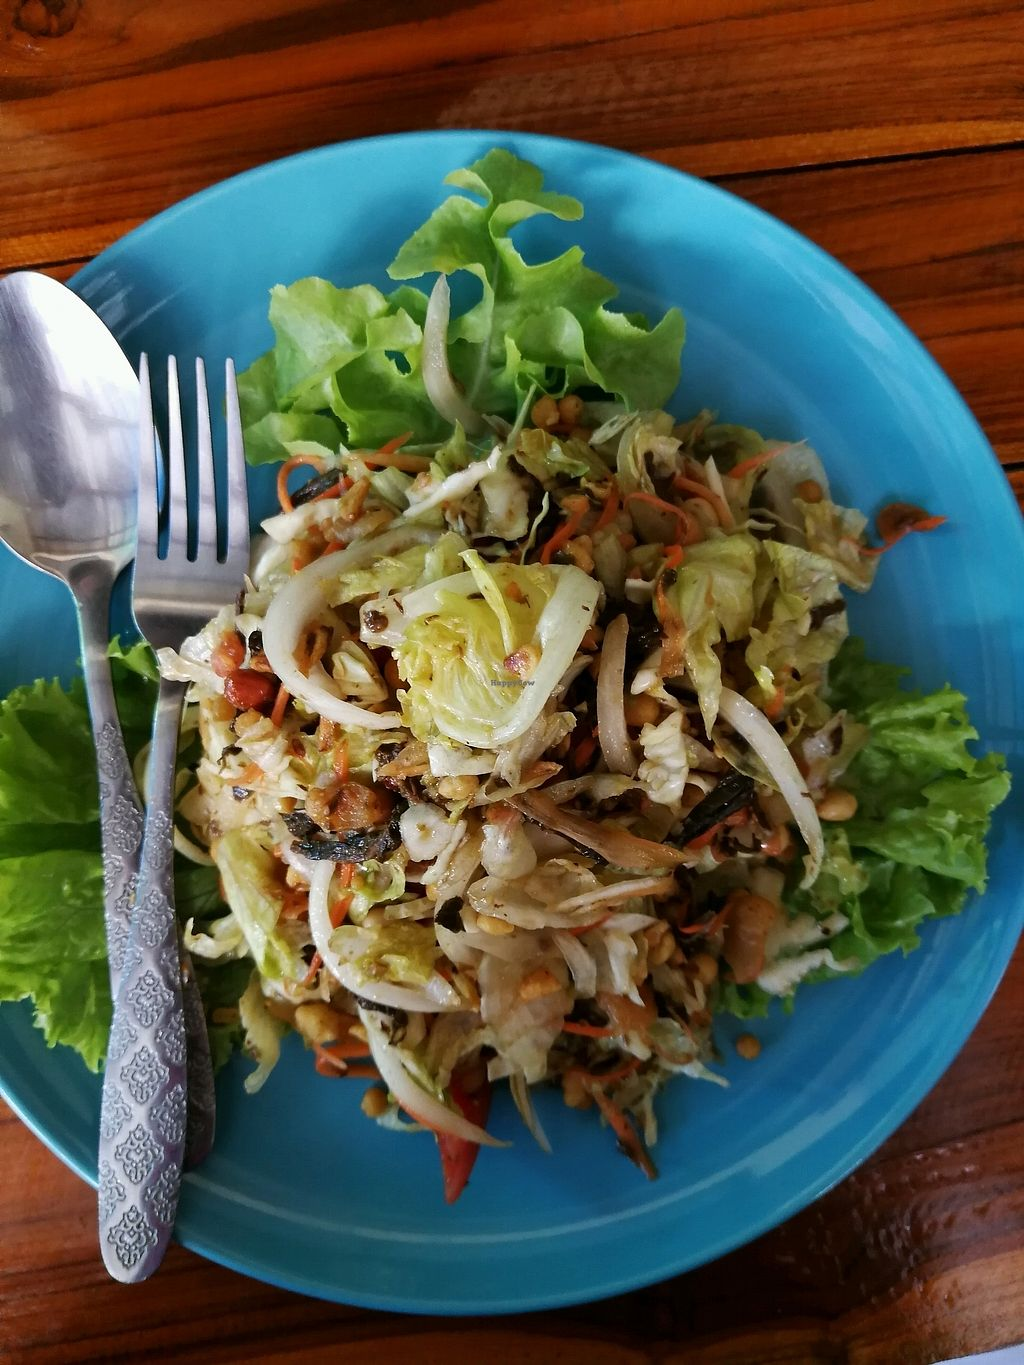 "Photo of Bodhi Tree Cafe 2  by <a href=""/members/profile/RawChefYin"">RawChefYin</a> <br/>Burmese tea leaf salad <br/> January 26, 2018  - <a href='/contact/abuse/image/76071/351152'>Report</a>"